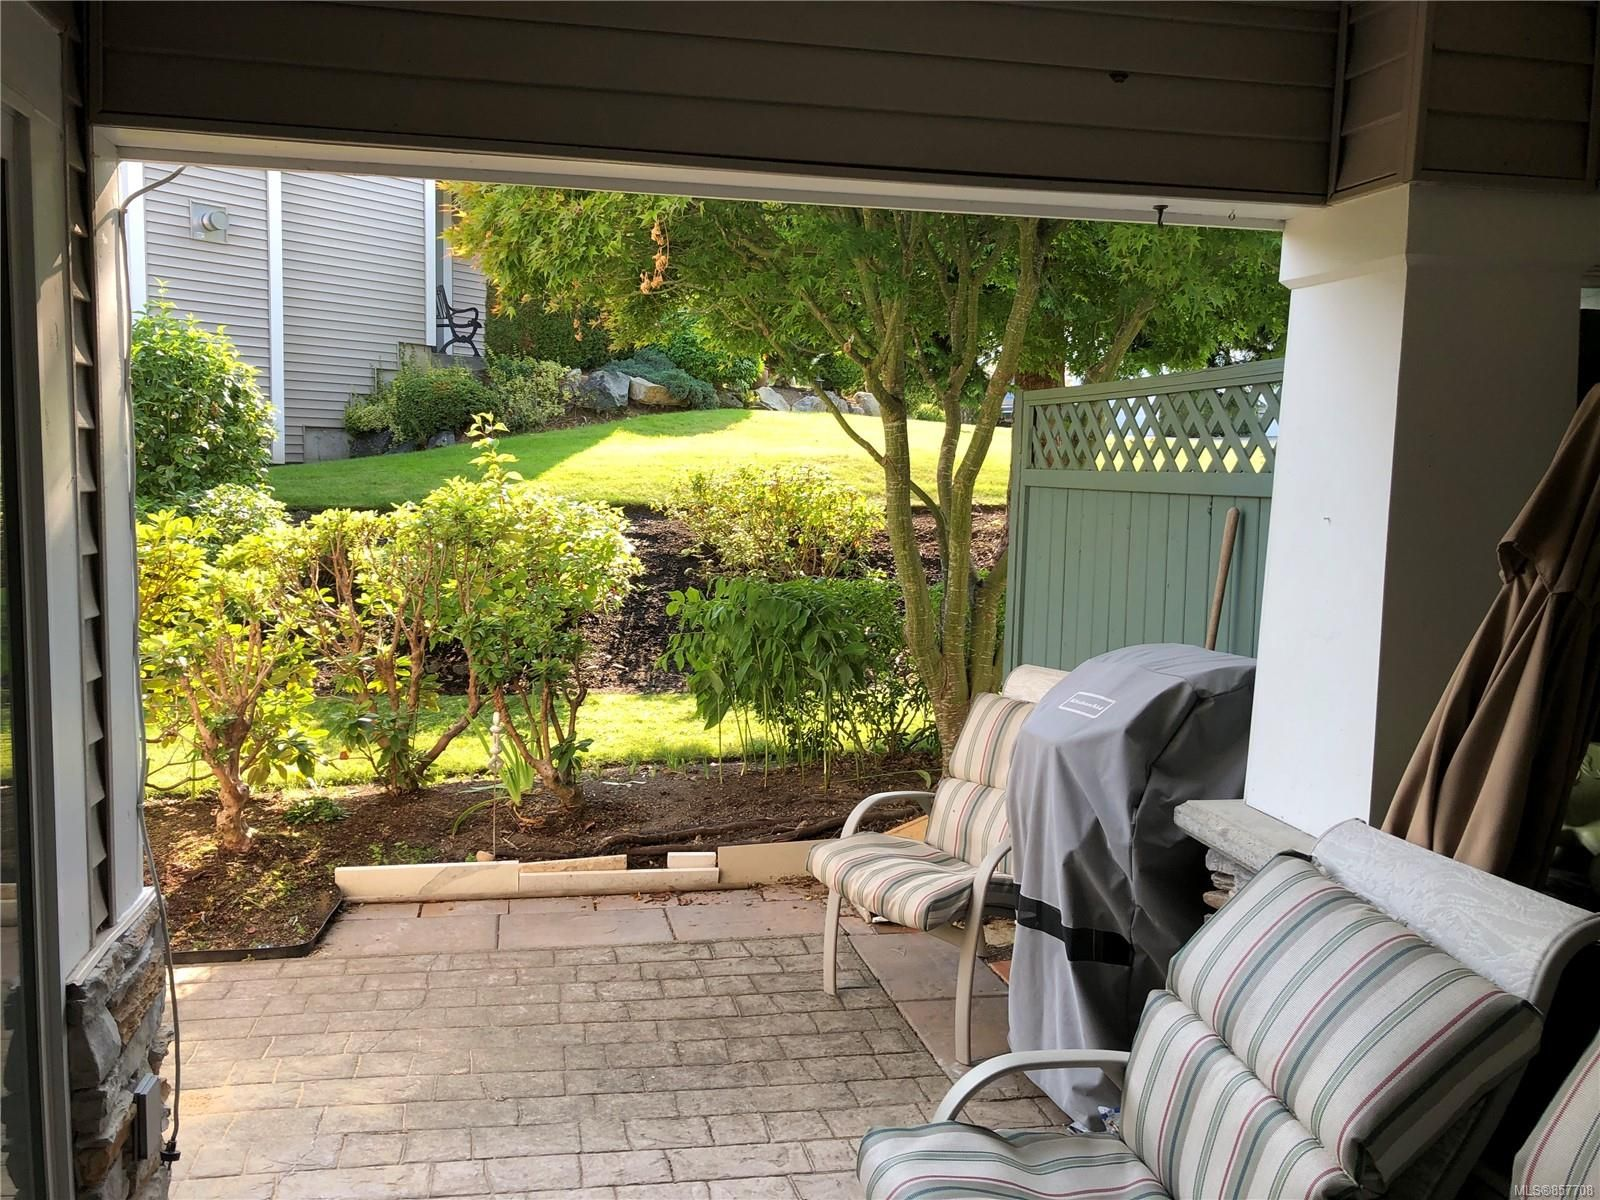 Photo 13: Photos: 6151 Bellflower Way in : Na North Nanaimo Row/Townhouse for sale (Nanaimo)  : MLS®# 857708